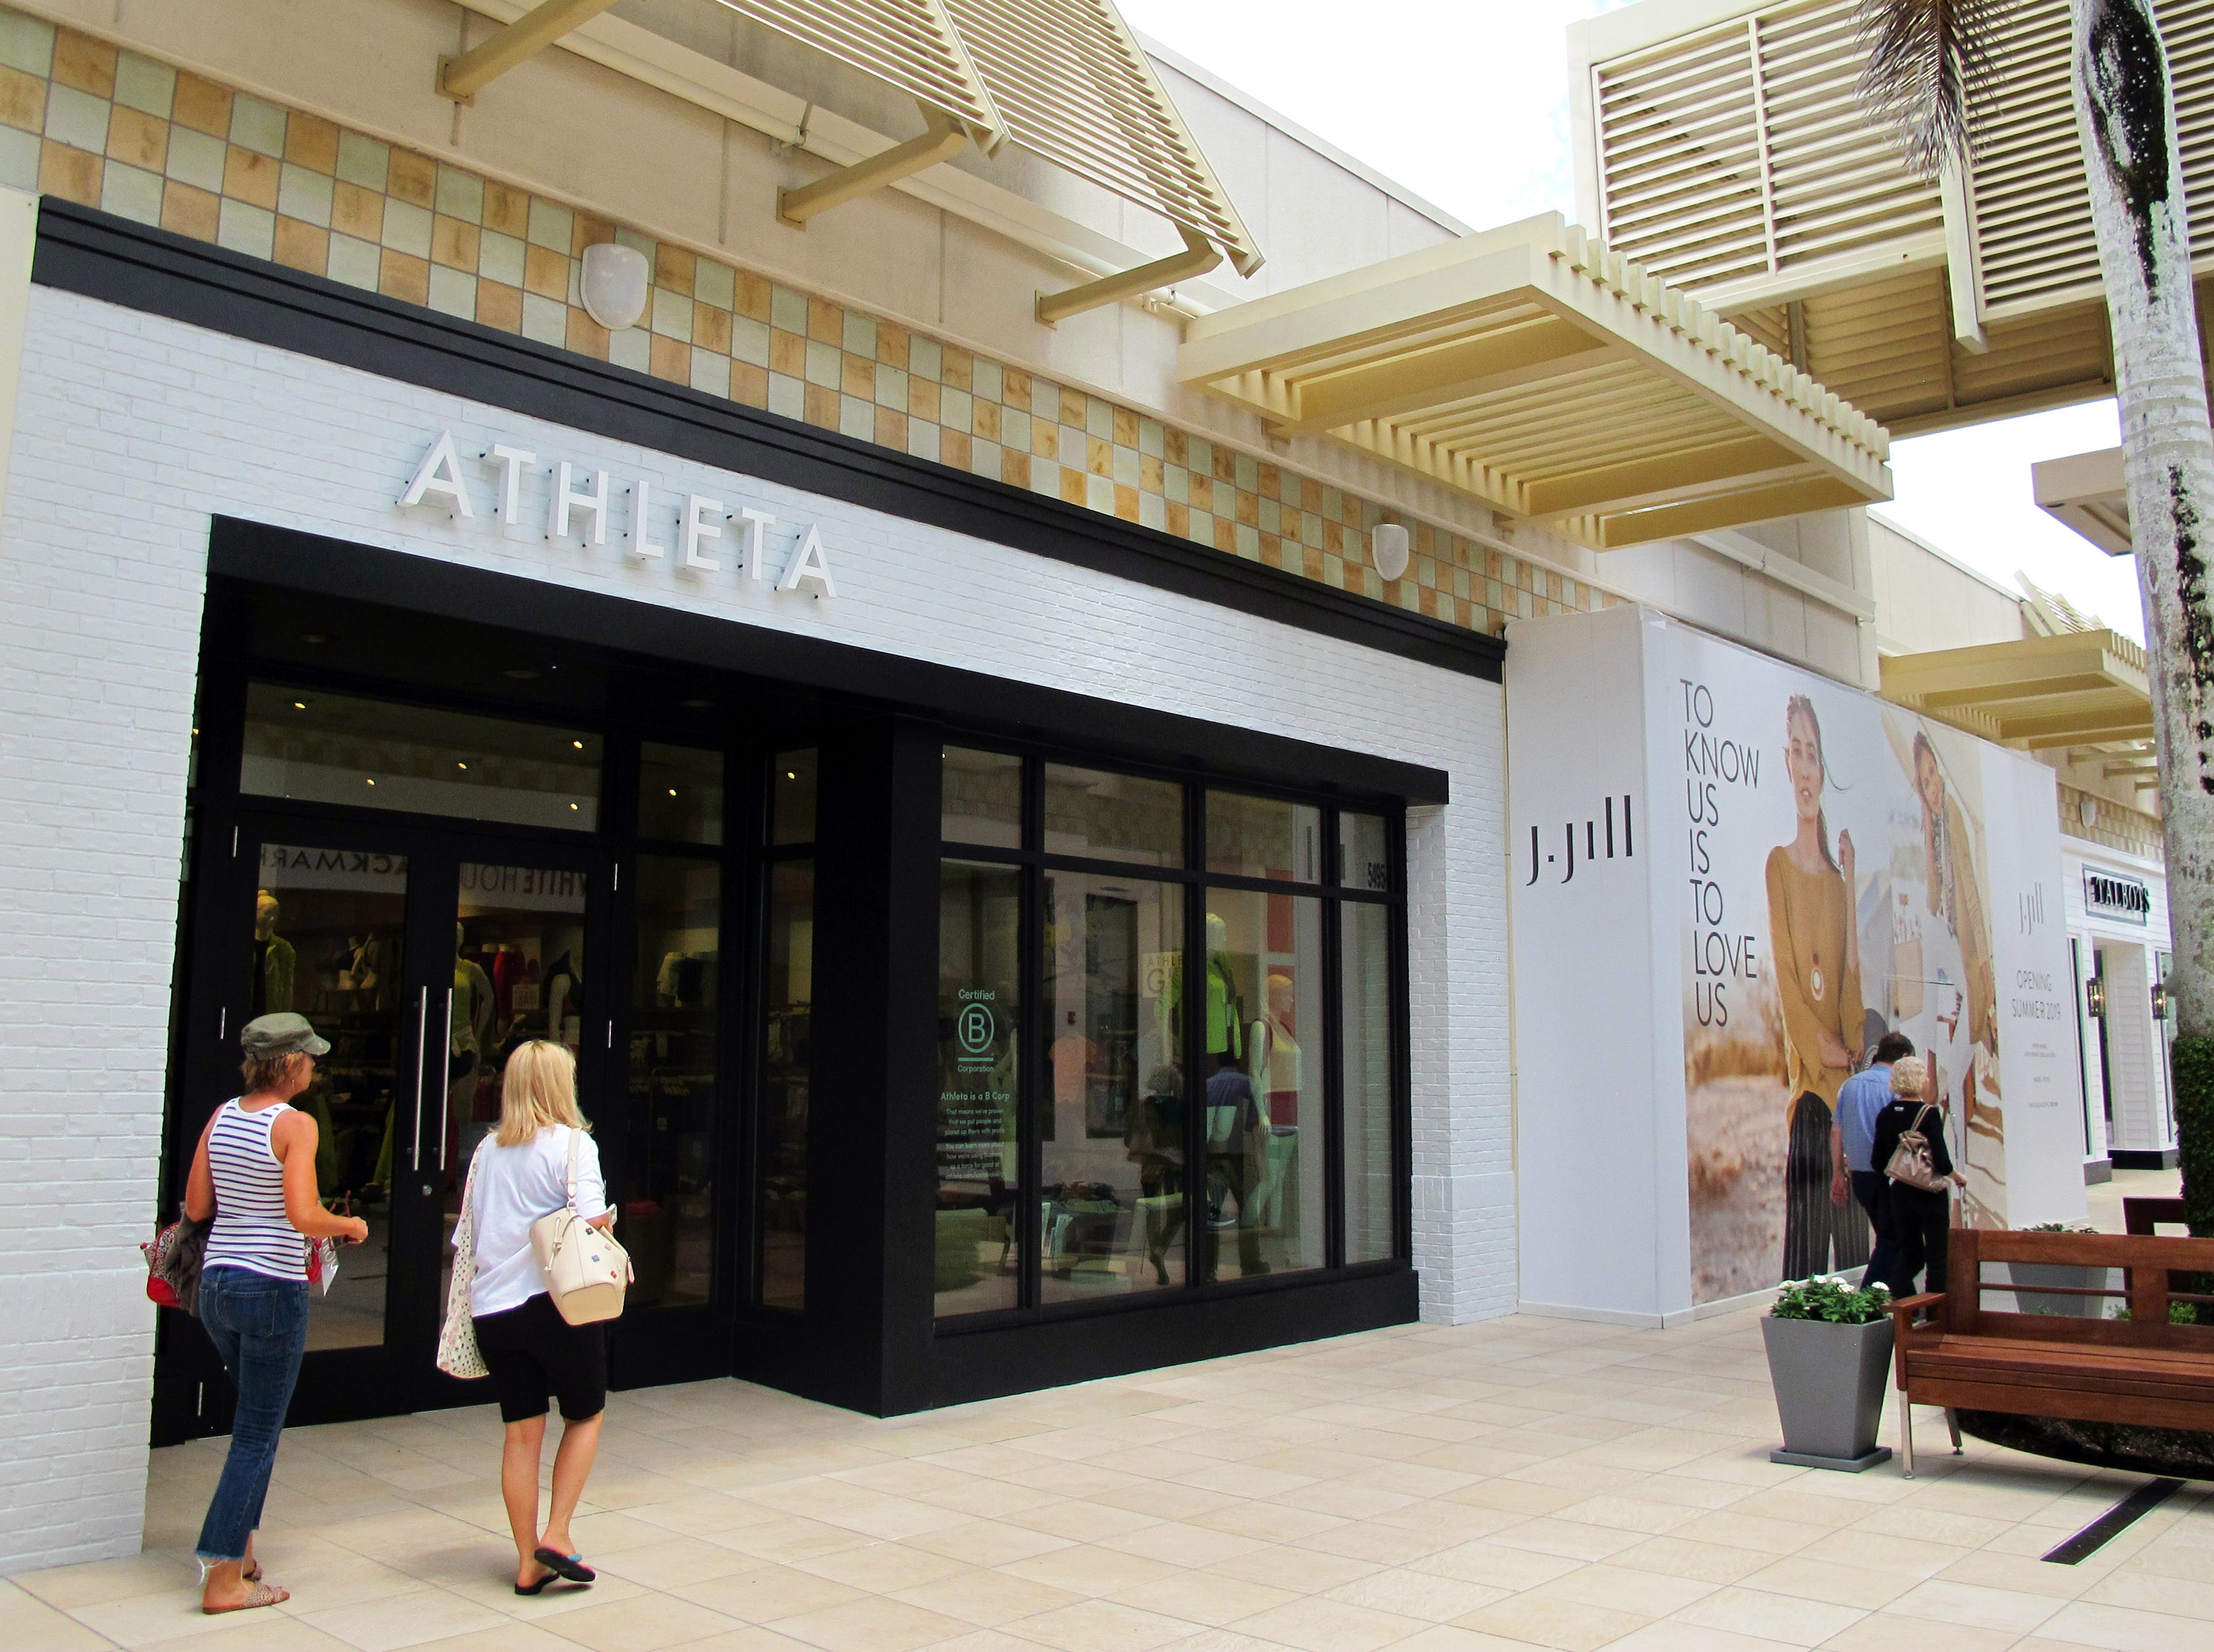 Athleta recently opened and J.Jill, coming next door this summer, are two of many new stores planned this year at Waterside Shops in Naples.